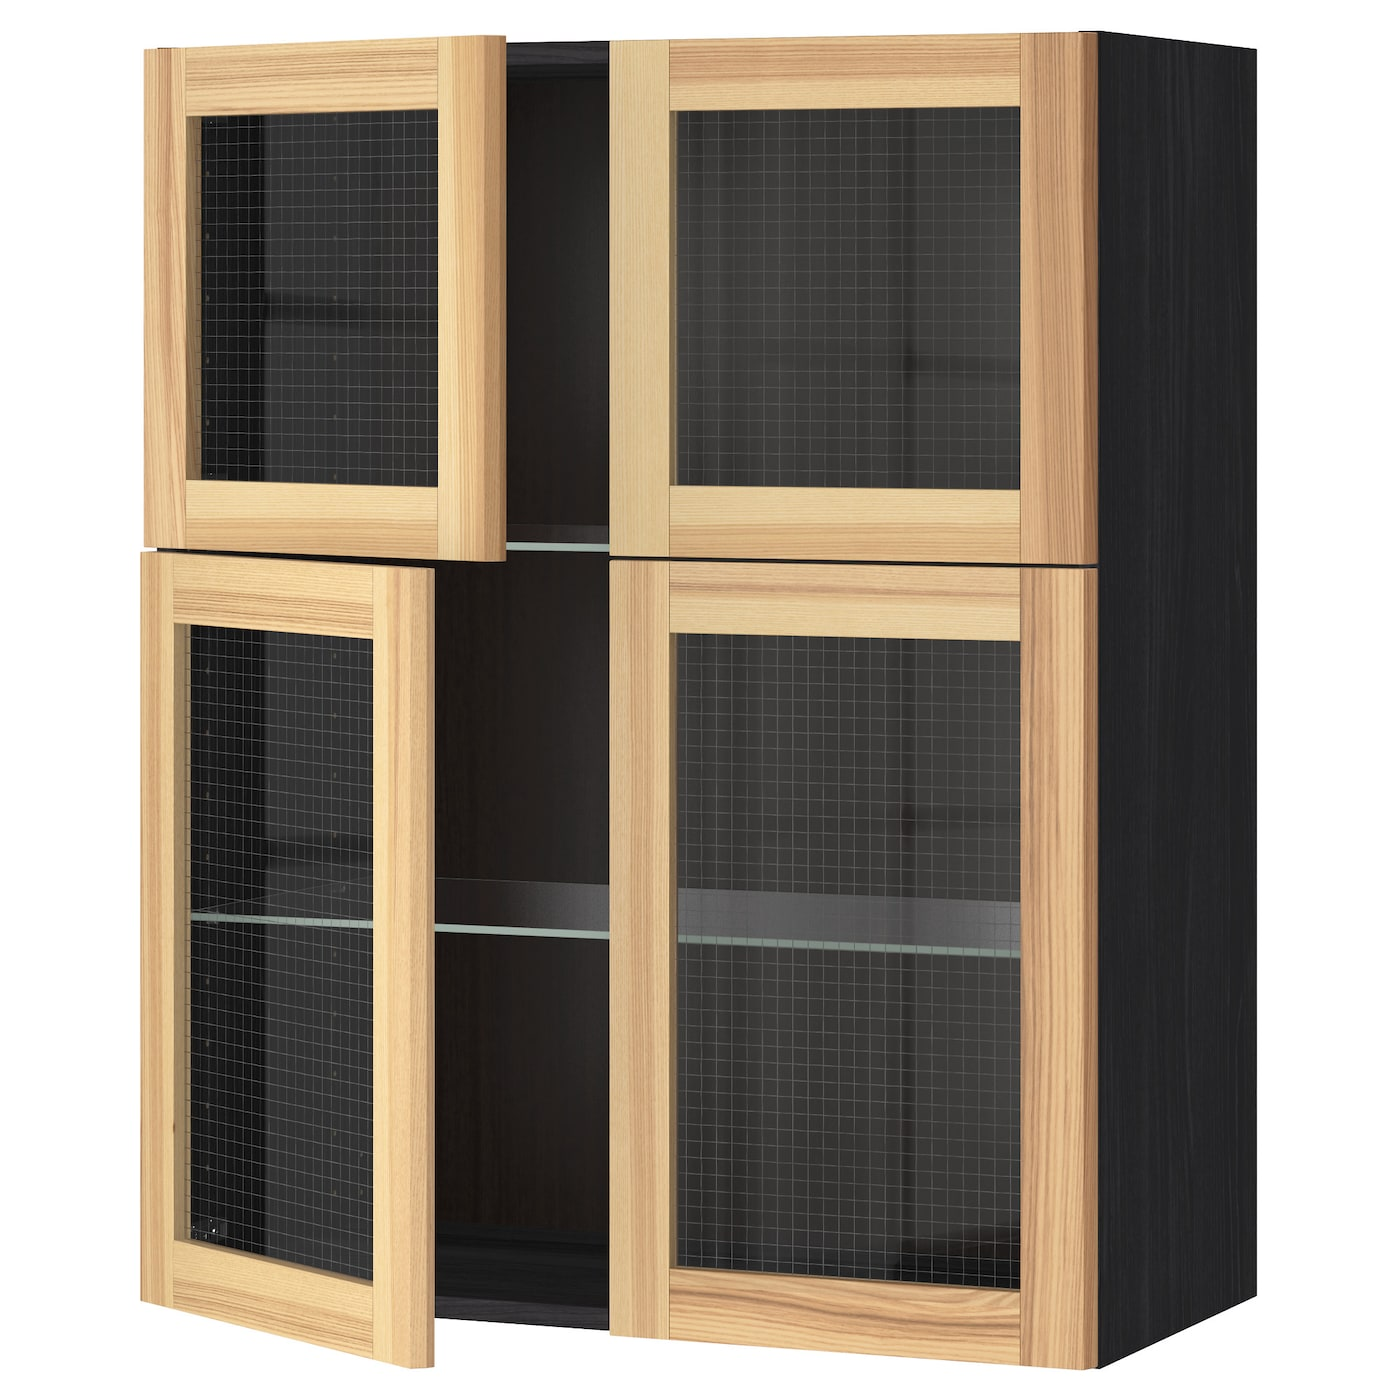 Metod wall cabinet w shelves 4 glass drs black torhamn ash for Glass kitchen wall units